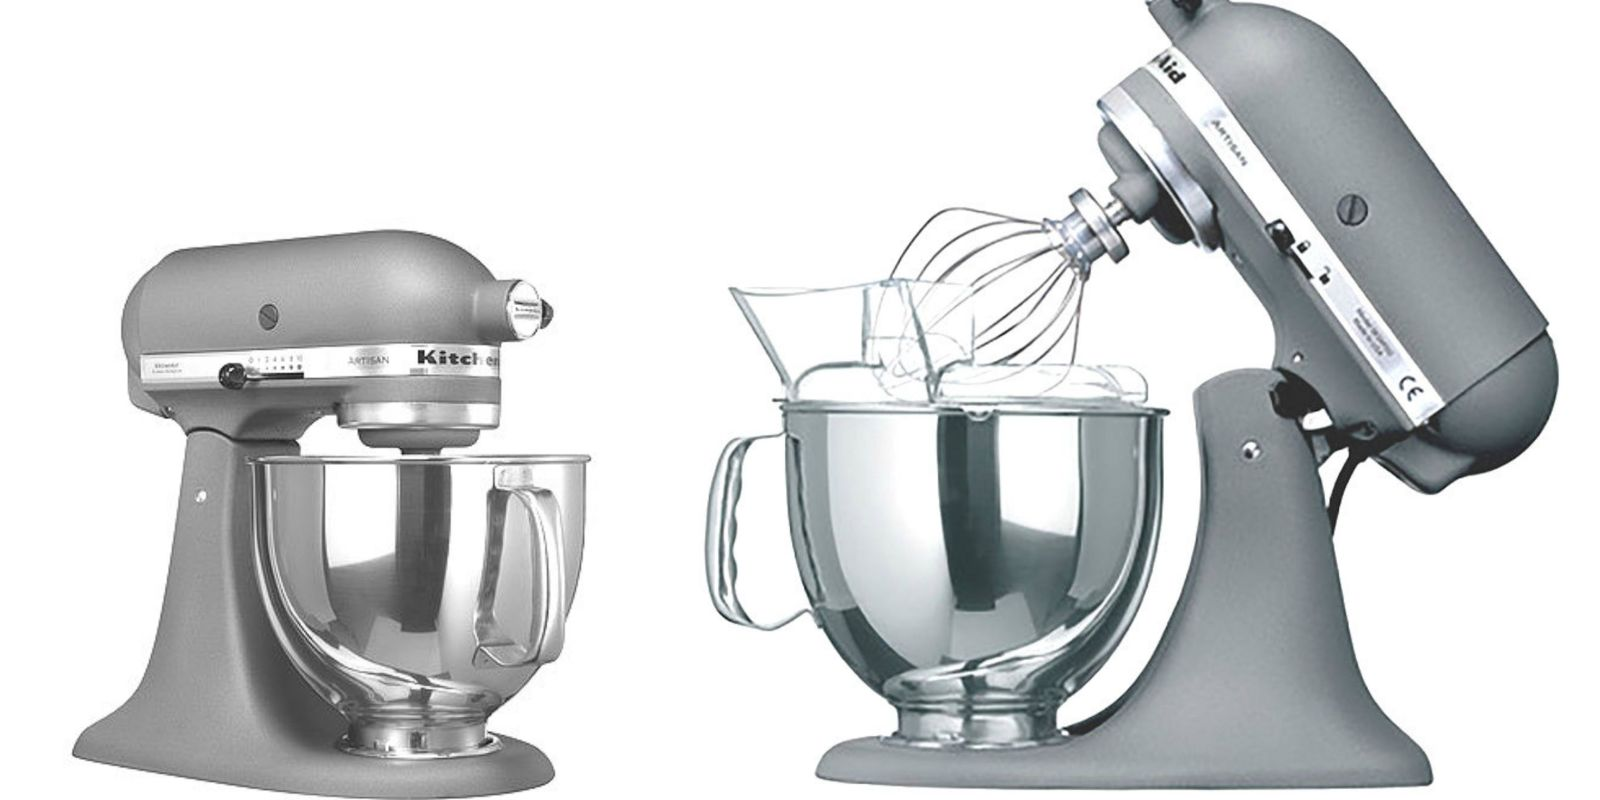 Lakeland Is Selling An Exclusive Grey KitchenAid Stand Mixer For £299    Black Friday Deals